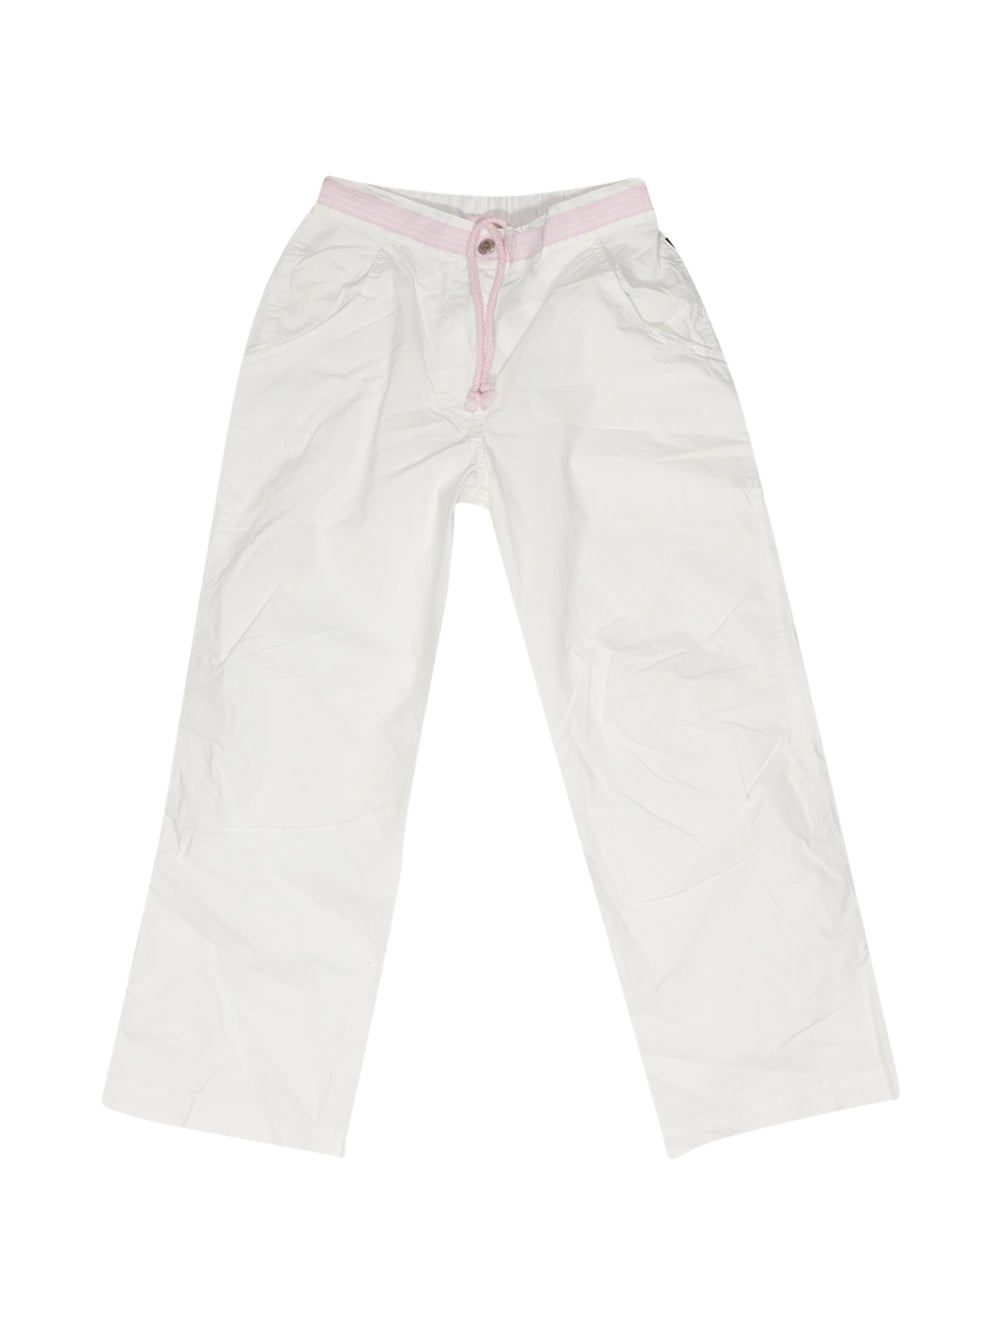 Front photo of Preloved Geox White Girl's trousers - size 5-6 yrs